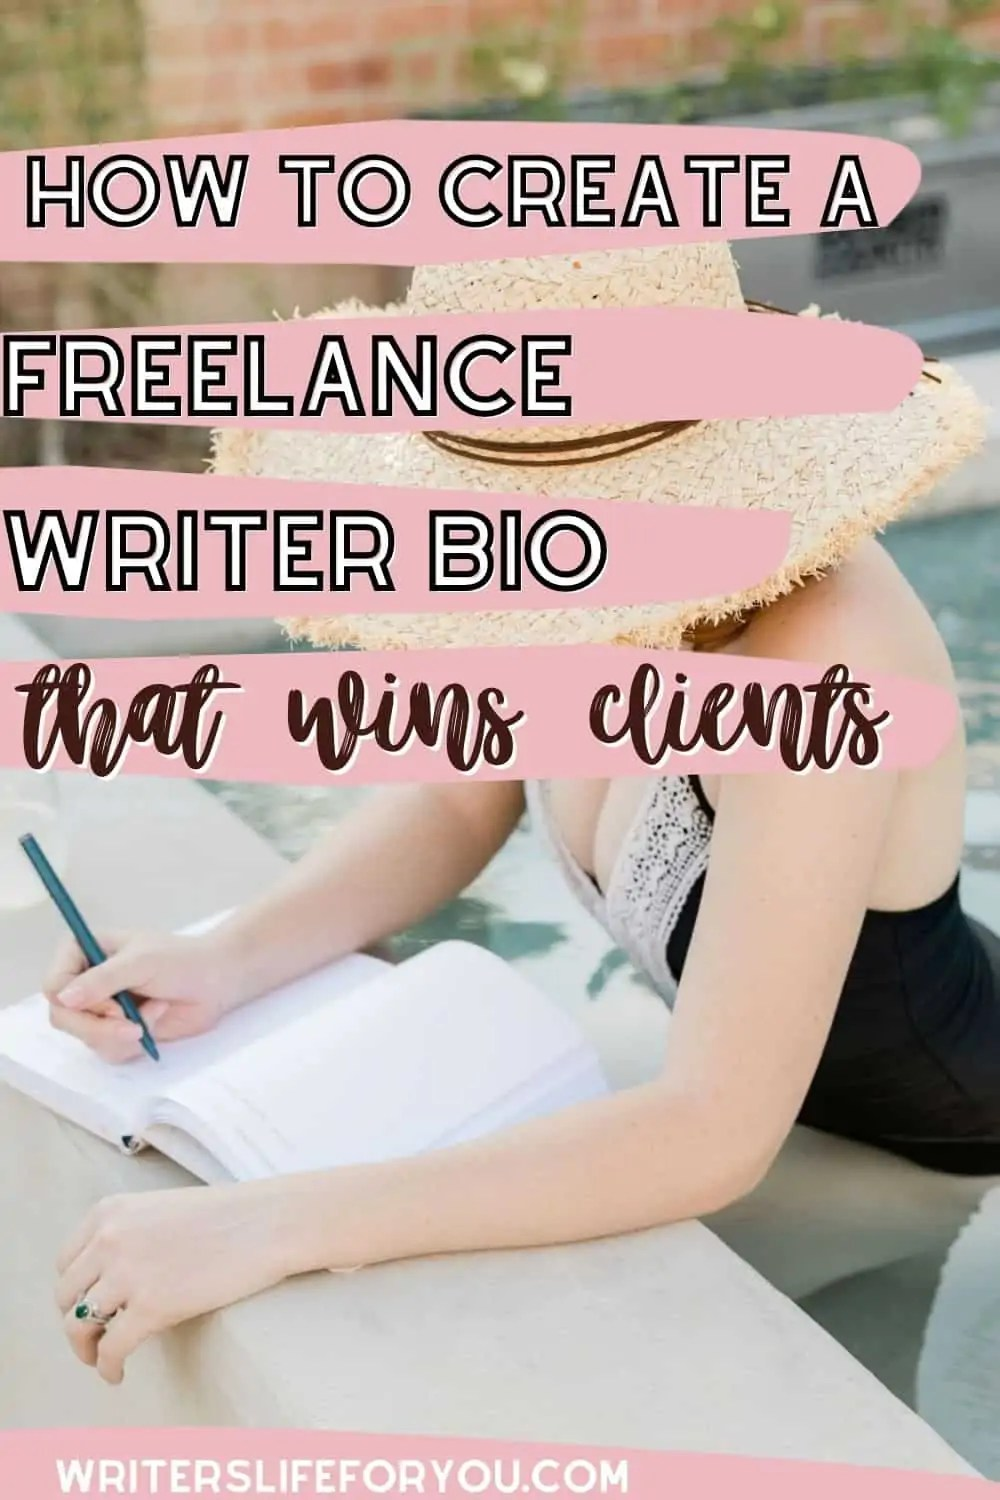 How to Create a Freelance Writer Bio That Wins Clients